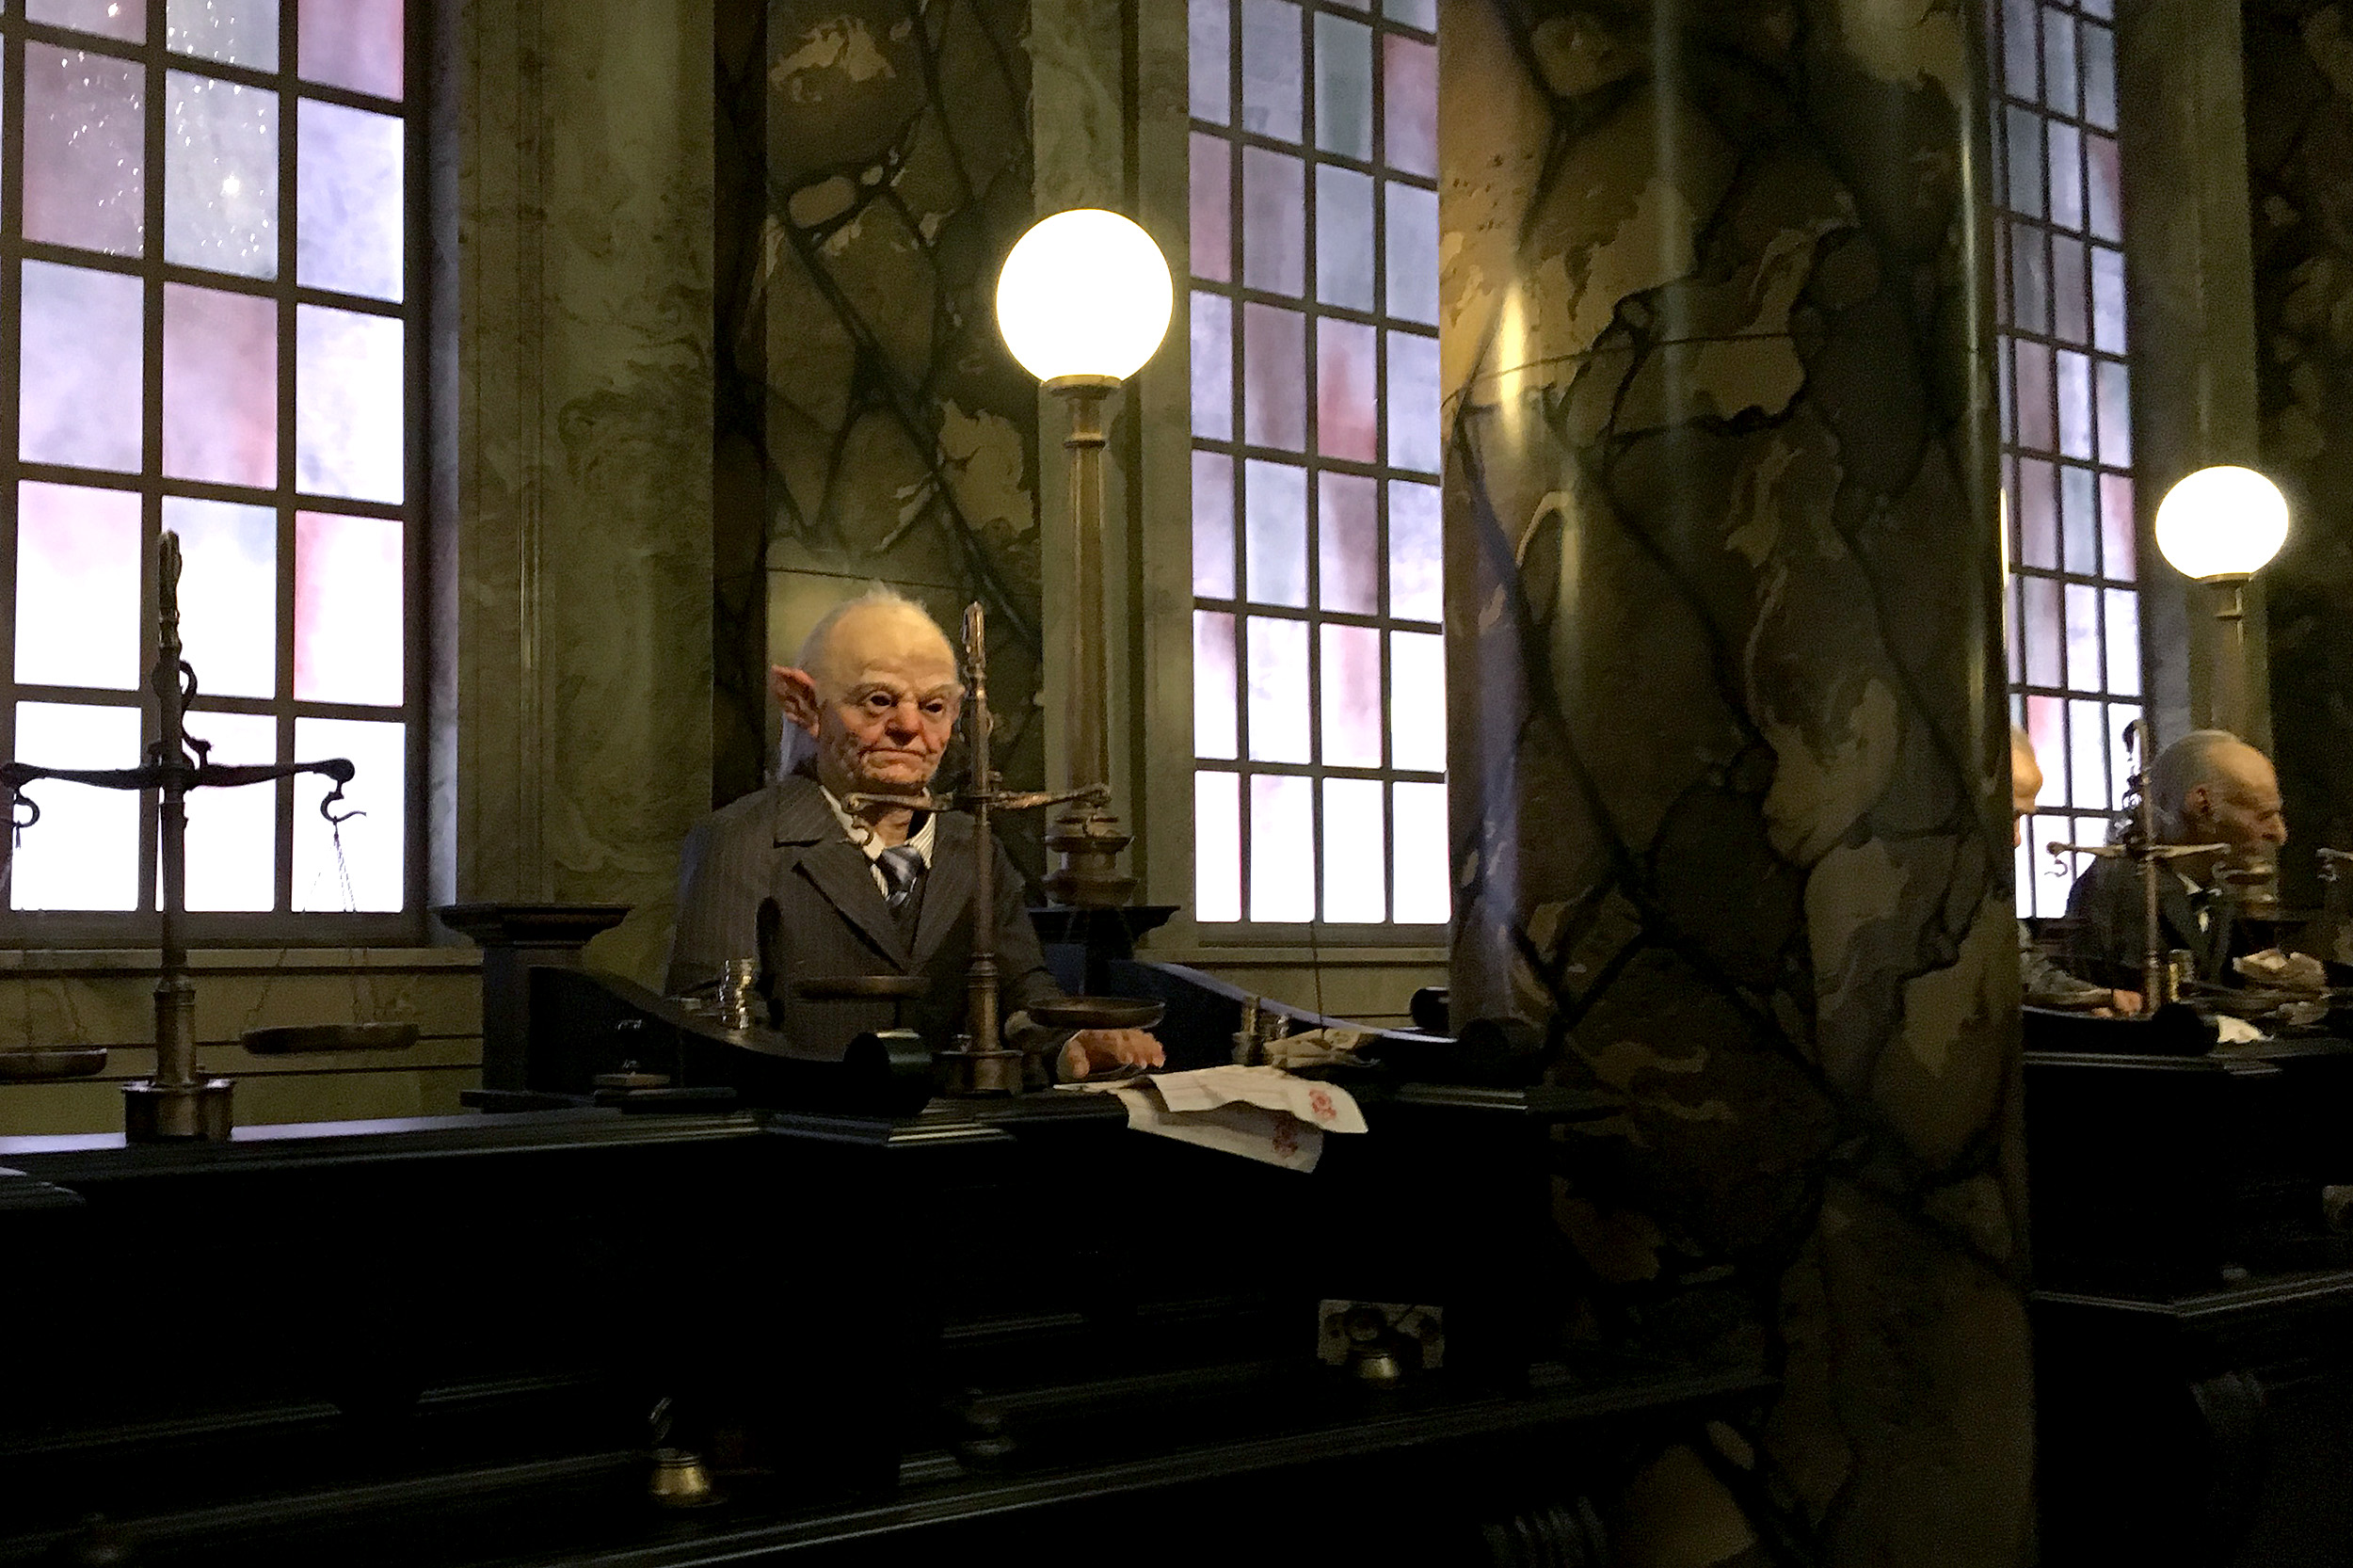 Goblin Escape from Gringotts. The wizarding world of harry potter.